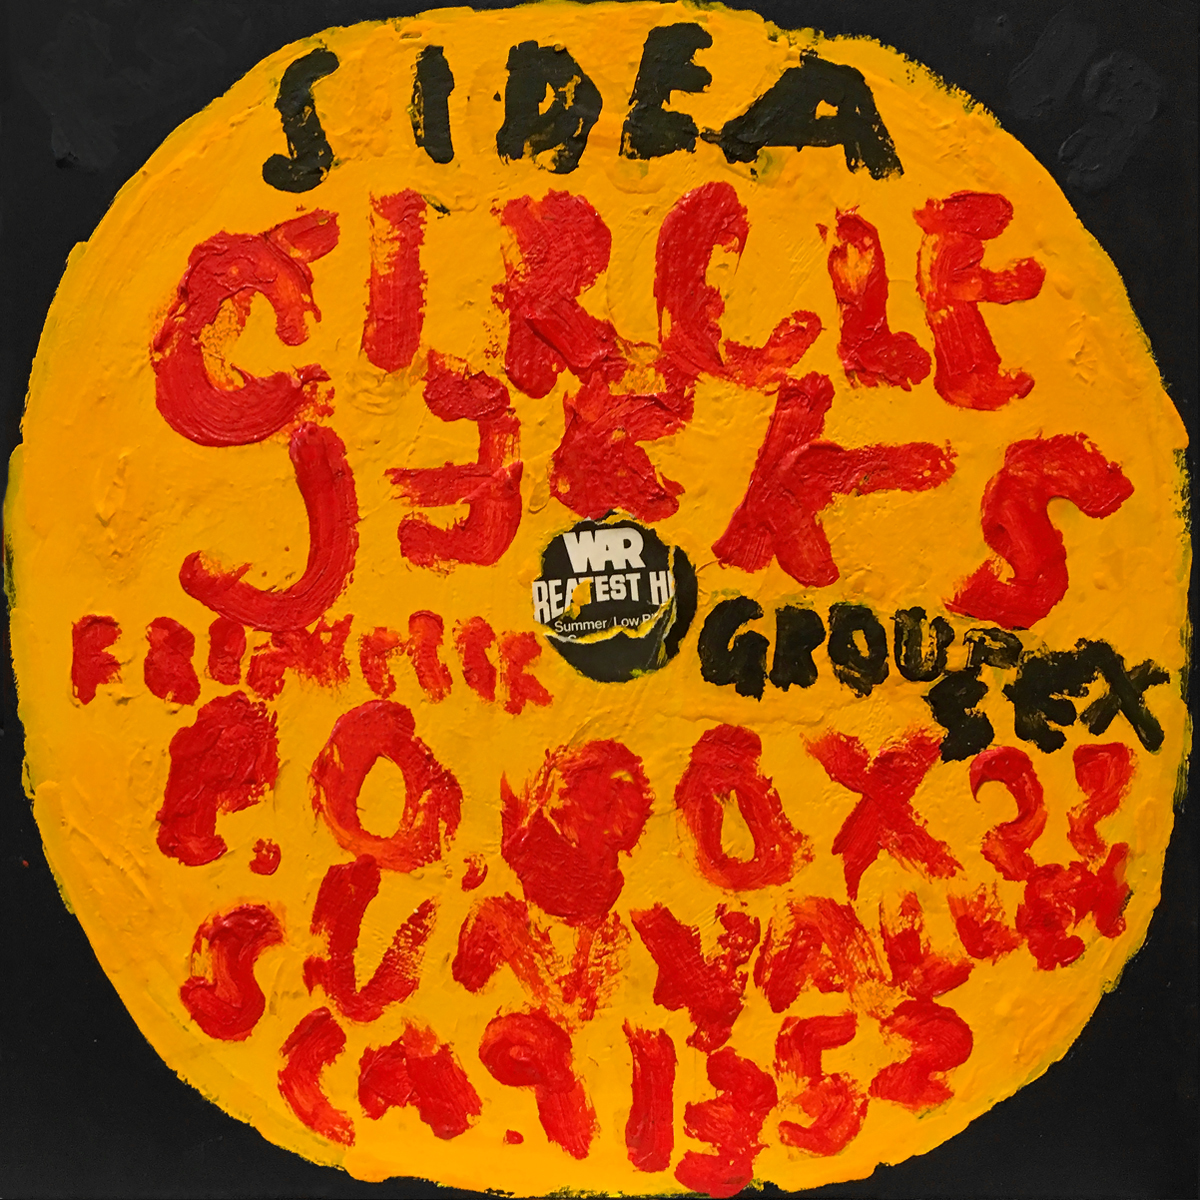 Circle Jerks / Group Sex